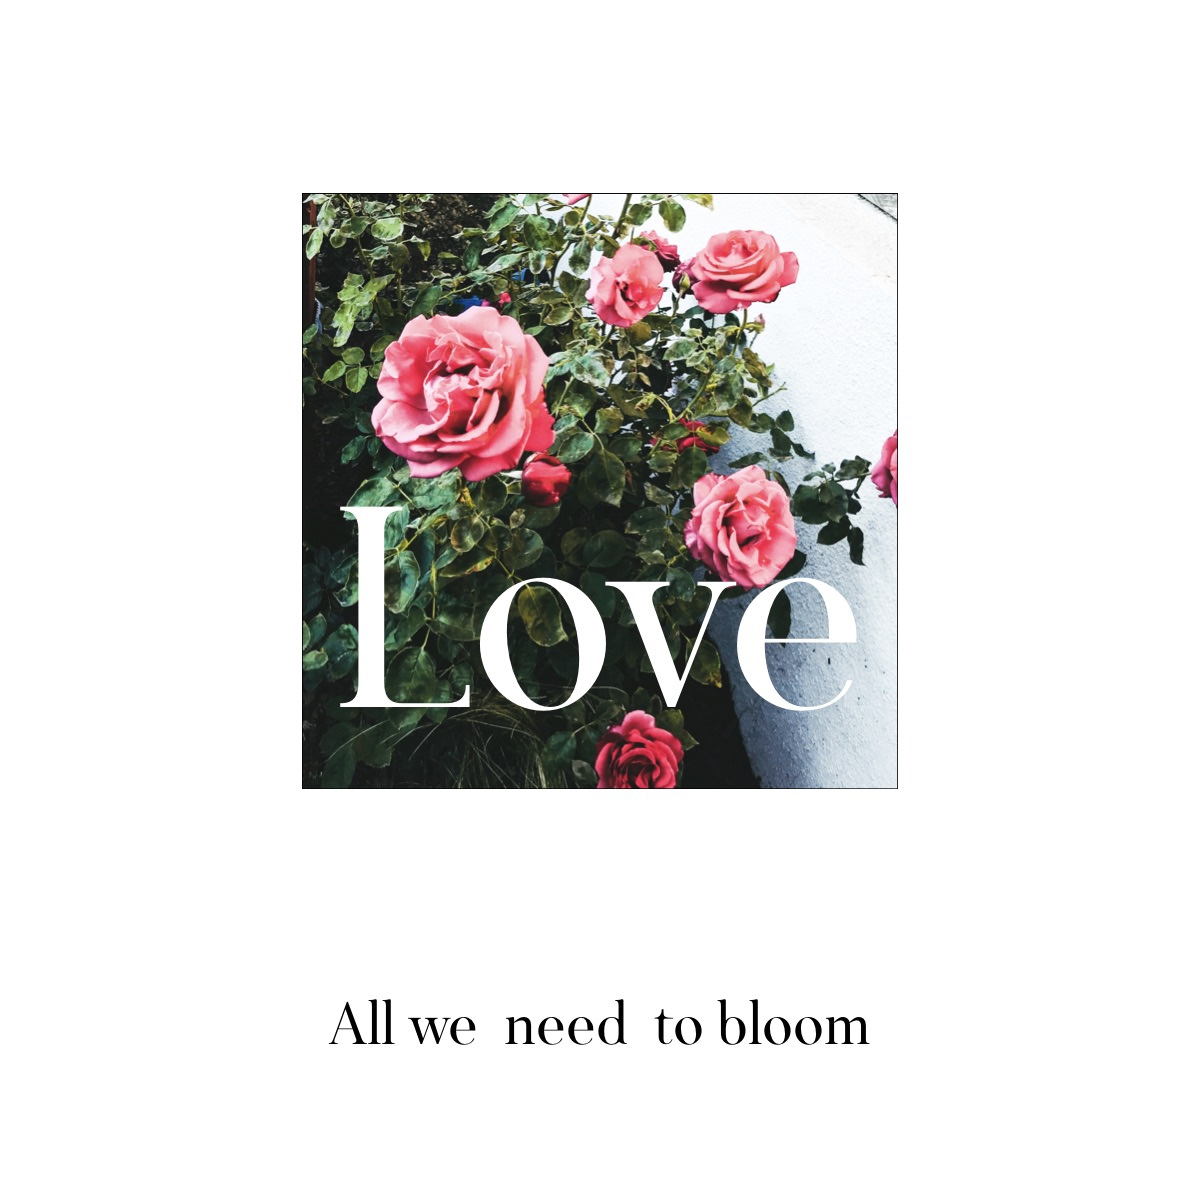 Bloom with love!